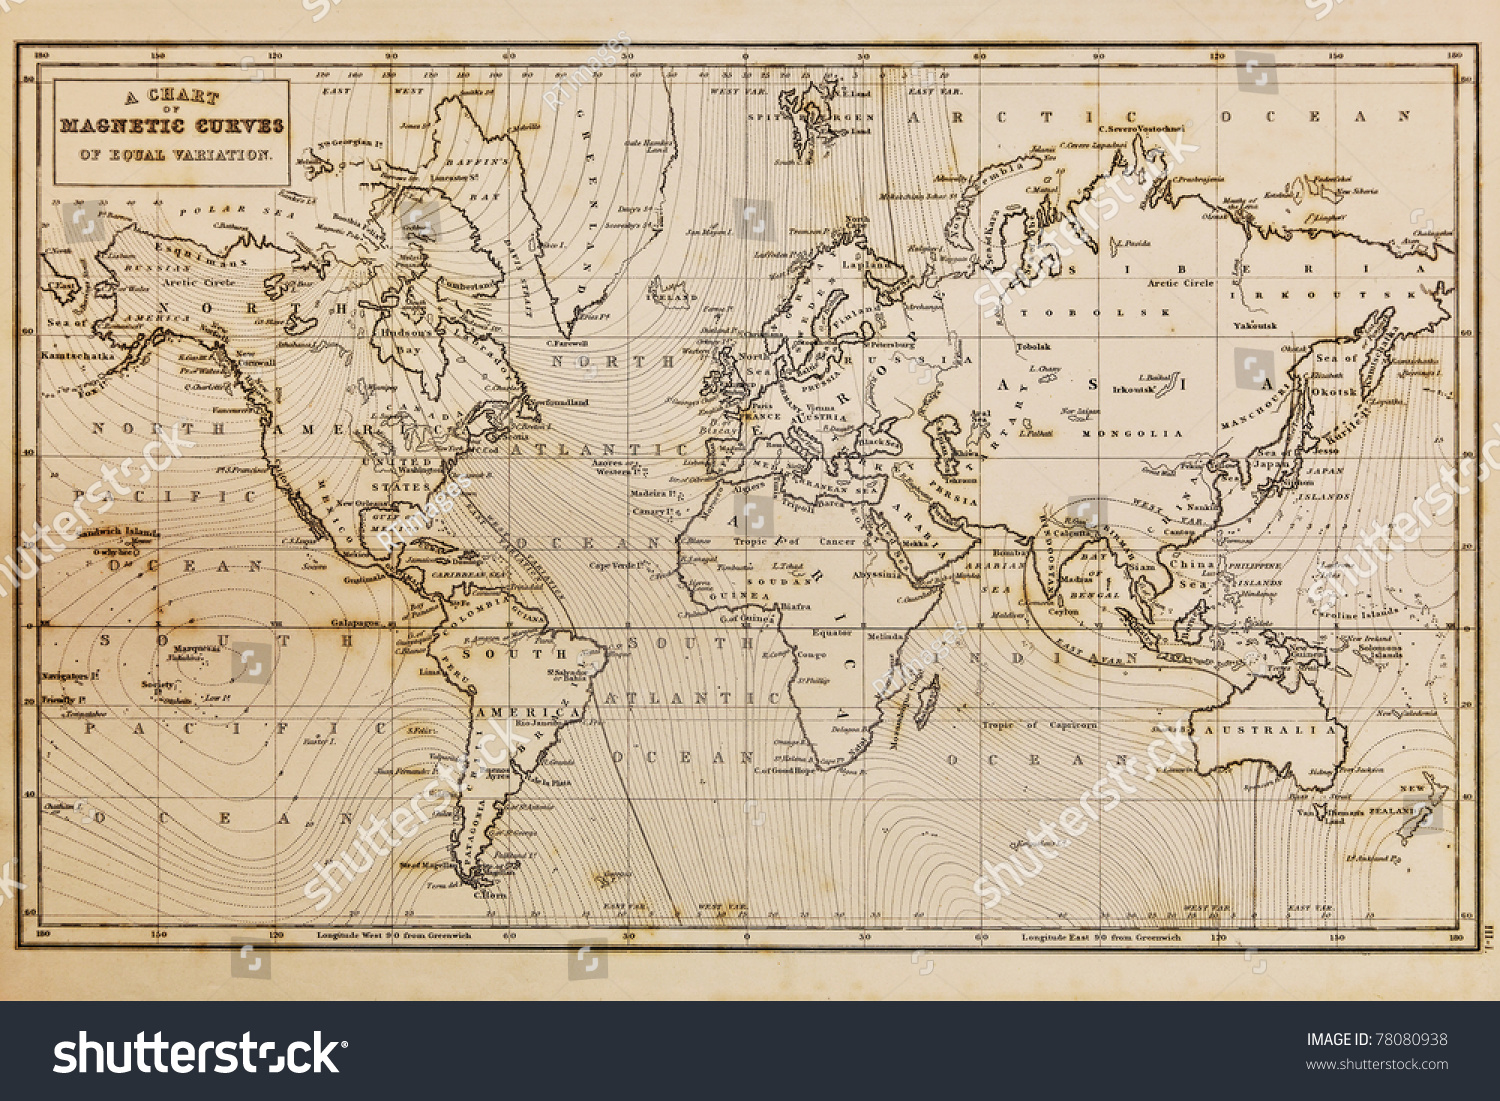 Photo Of A Genuine Hand Drawn World Map, It Was Drawn In 1844 And Therefore